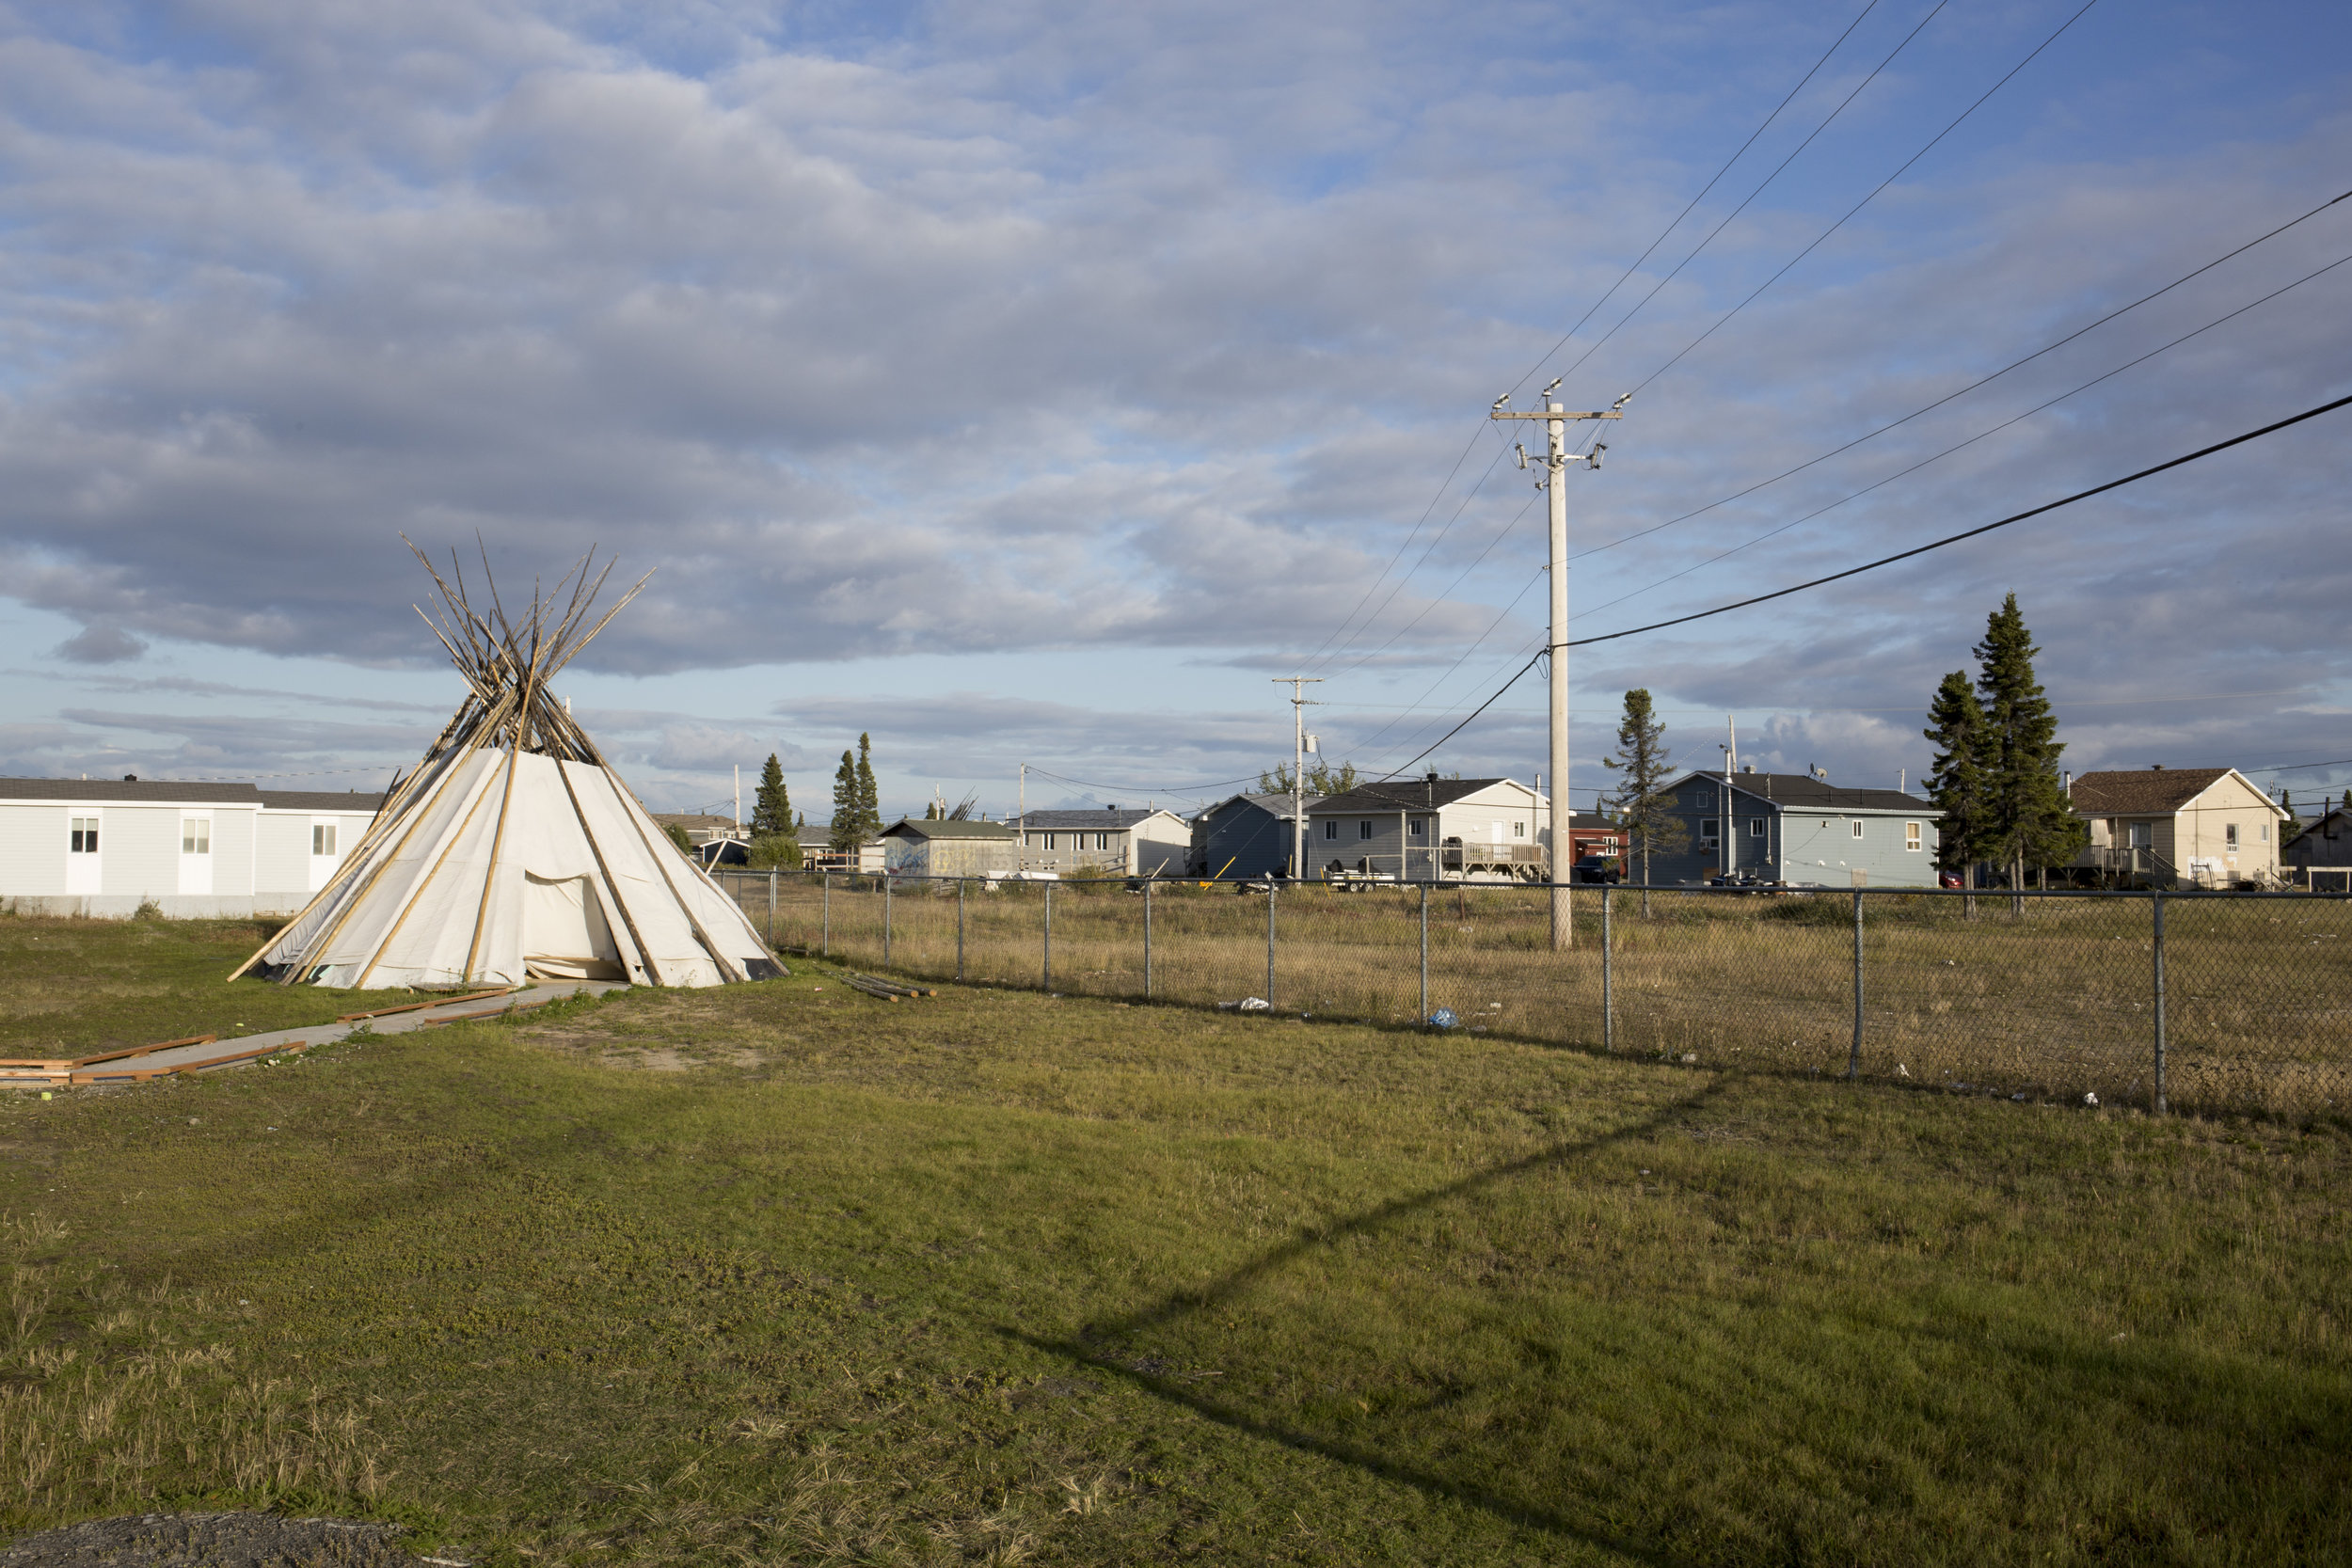 A backyard teepee in Chisasibi